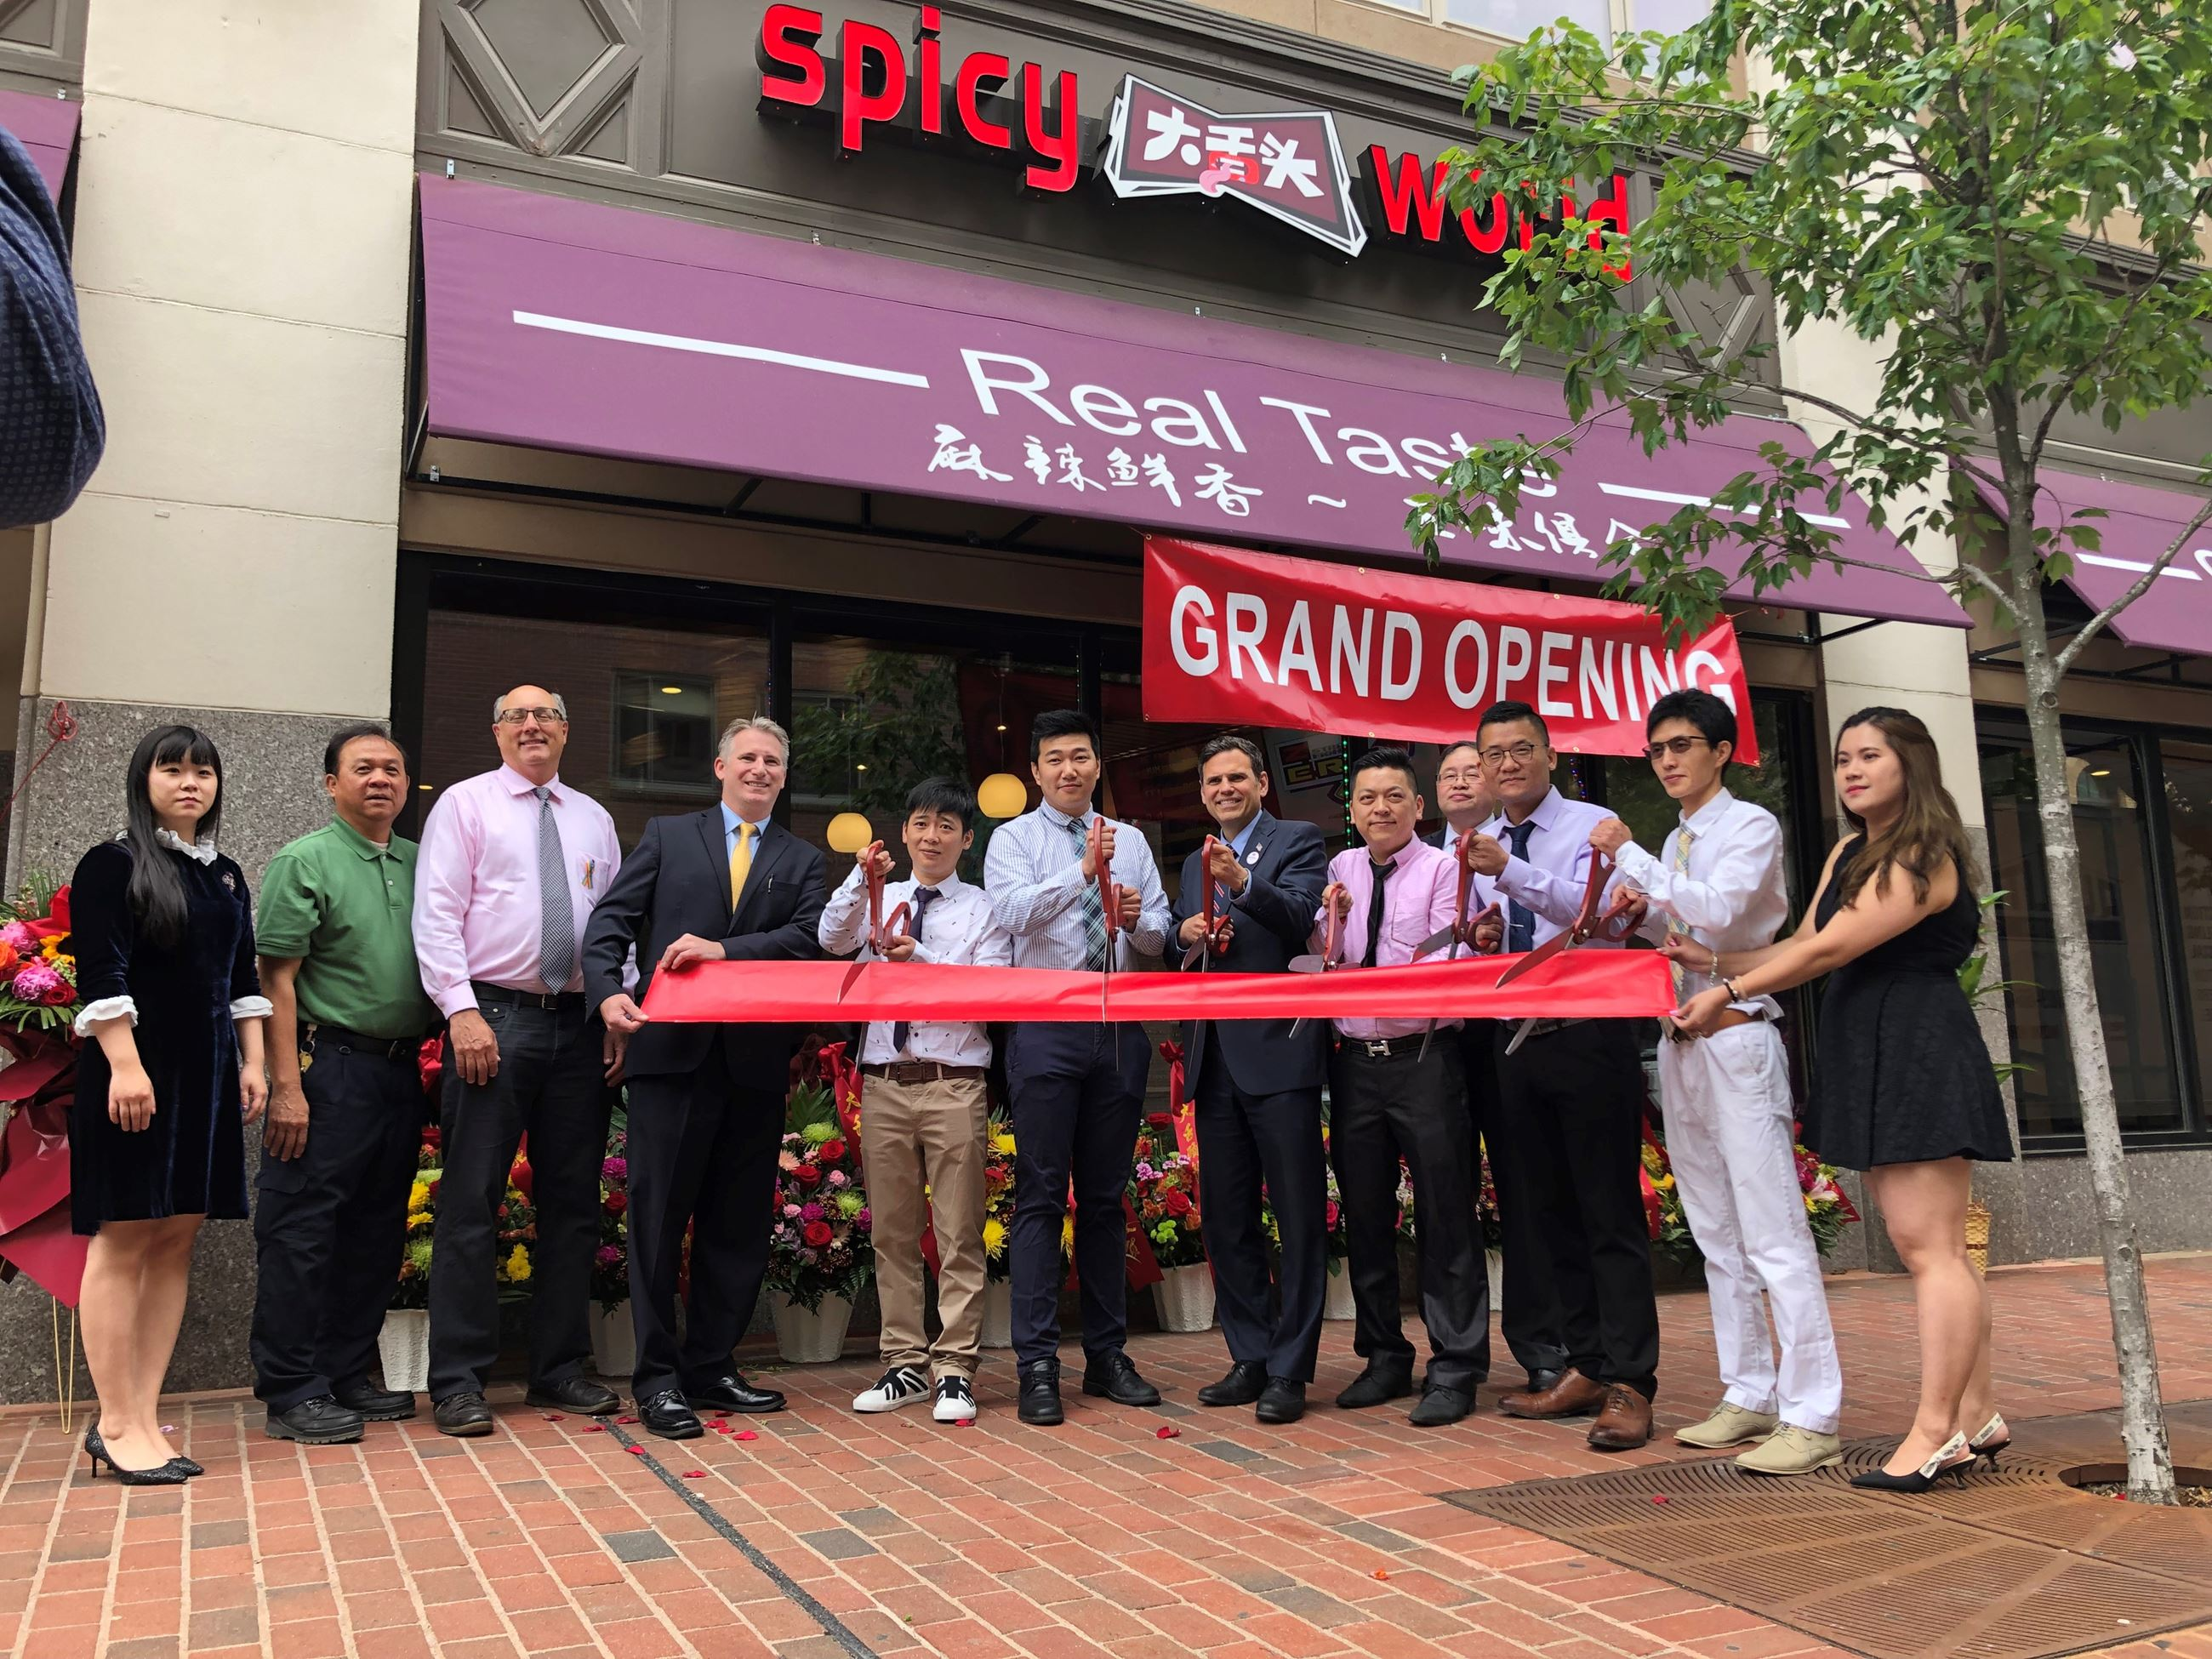 Spicy World Ribbon Cutting